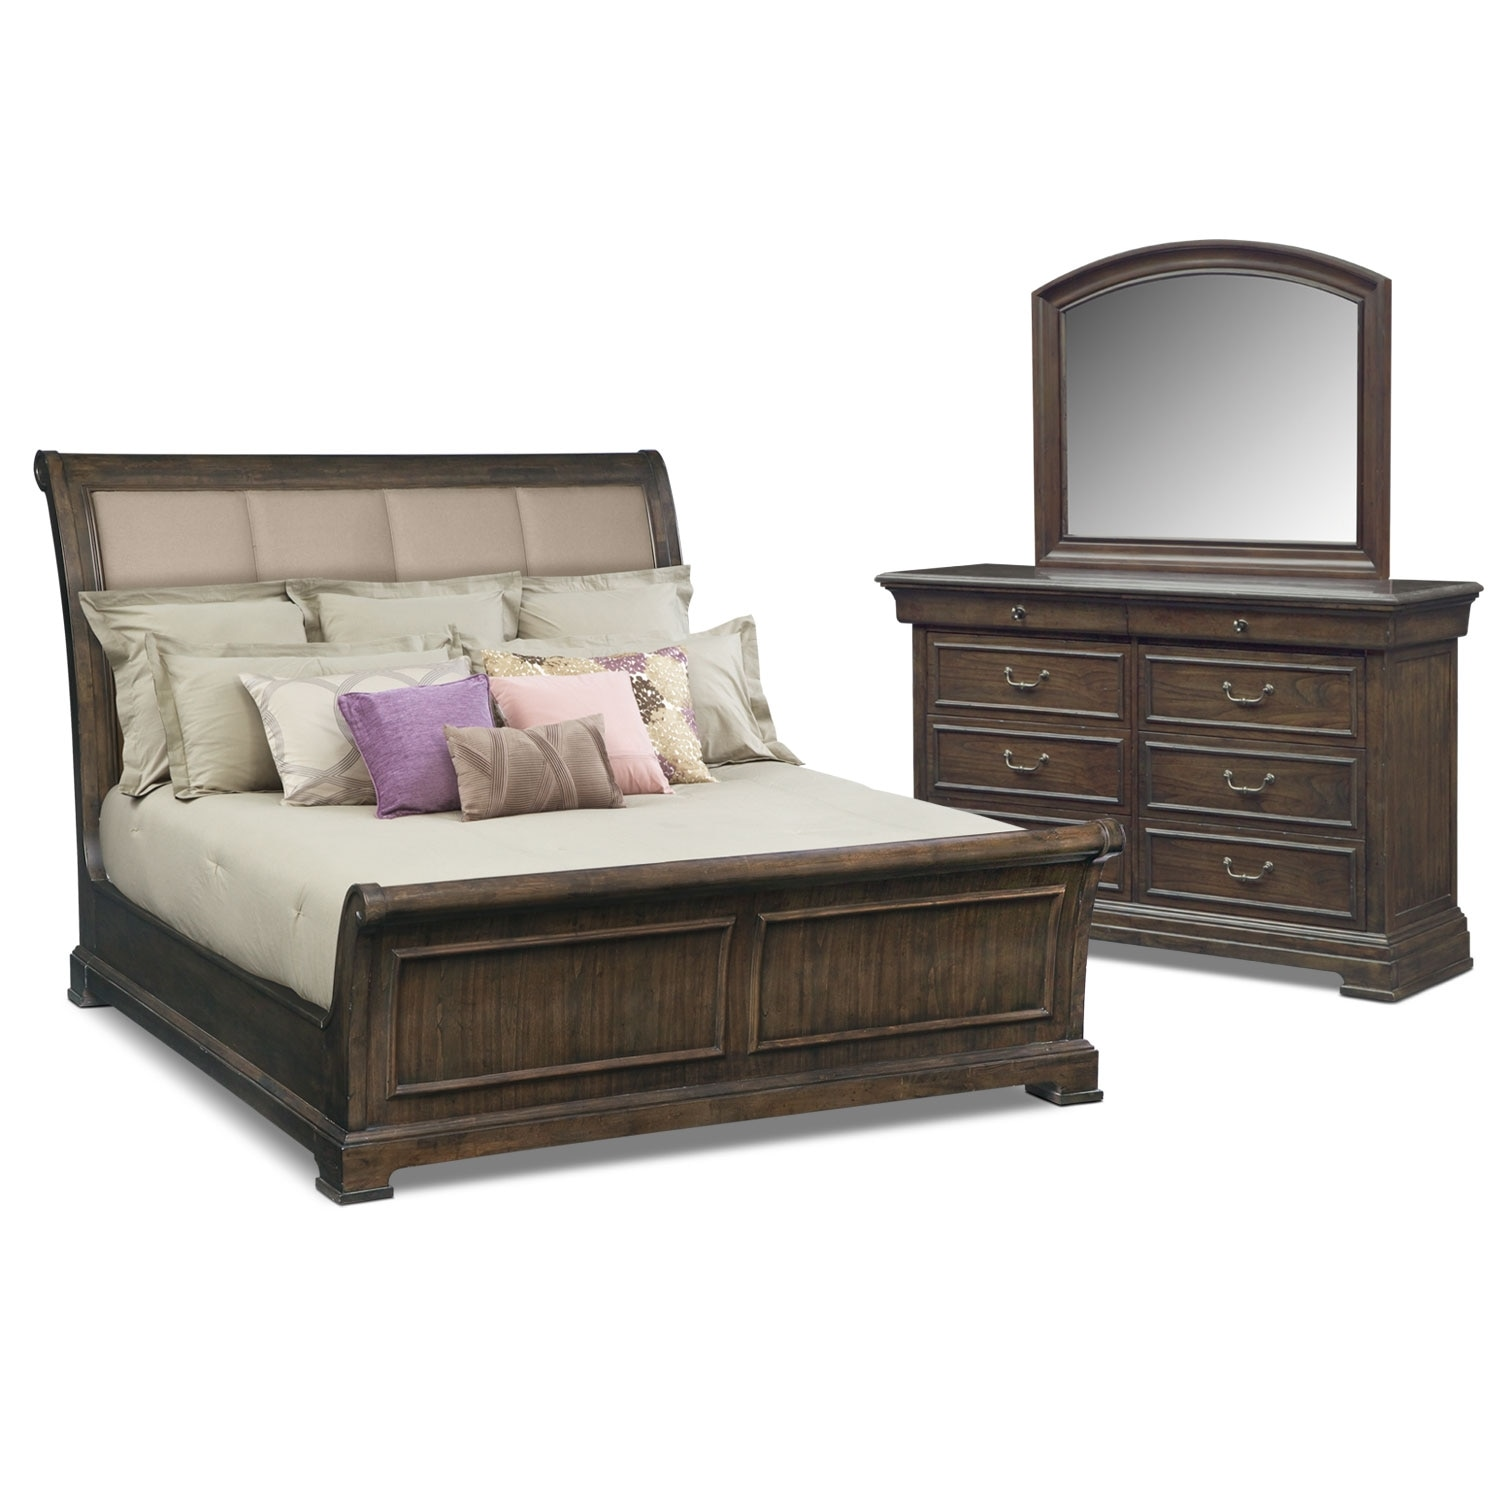 Bedroom Furniture - Collinwood 5-Piece King Bedroom Set - Brown